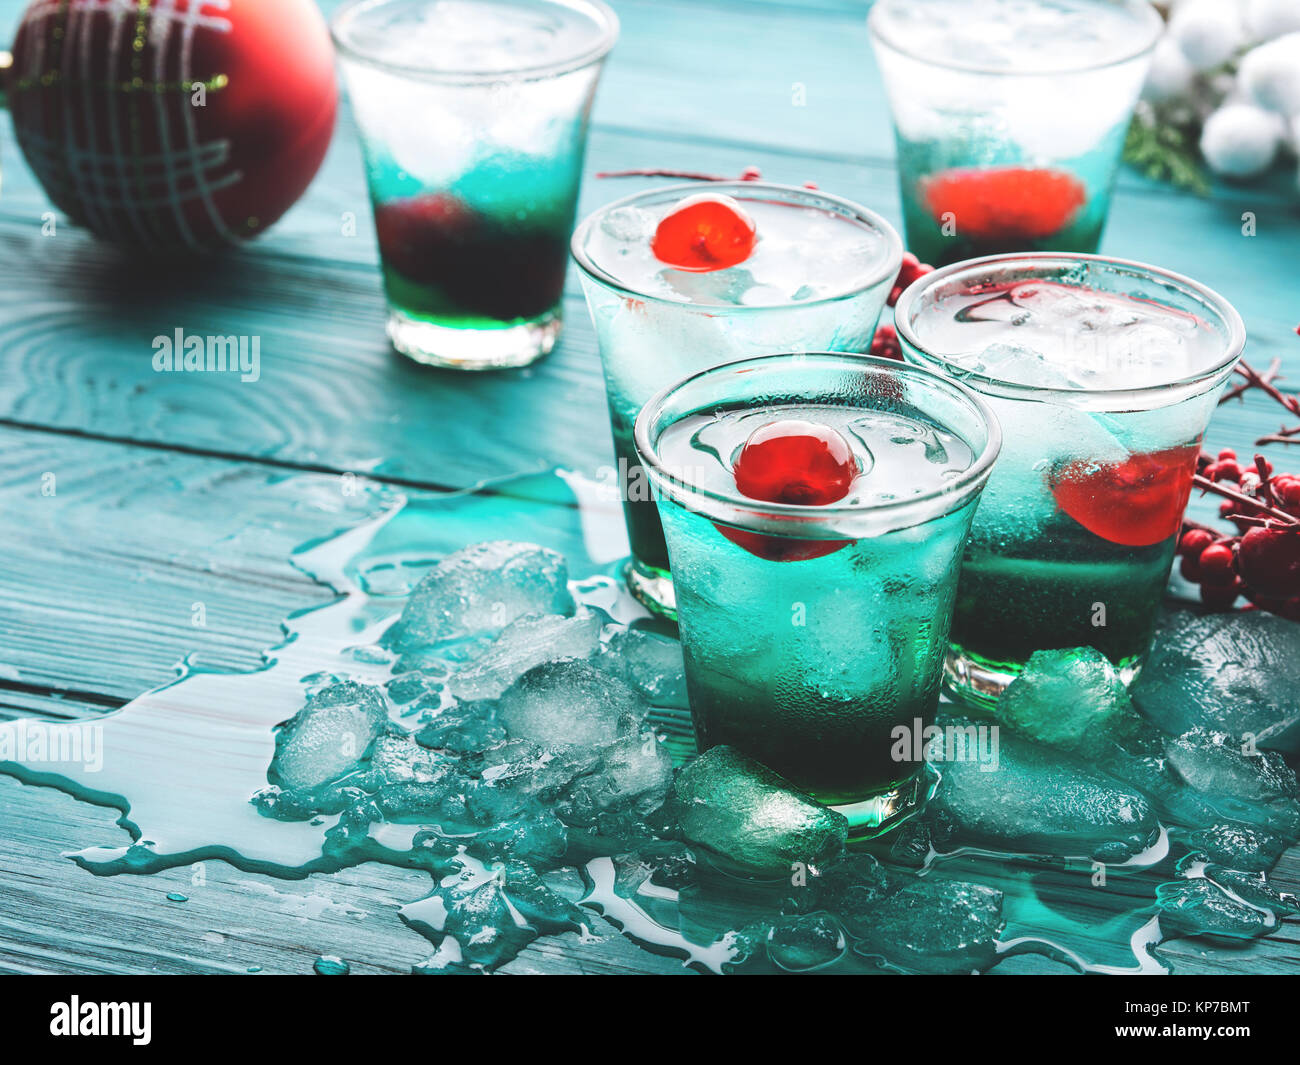 Christmas Alcoholic Drinks.Christmas Holiday Party Green Alcohol Drinks With Cherry